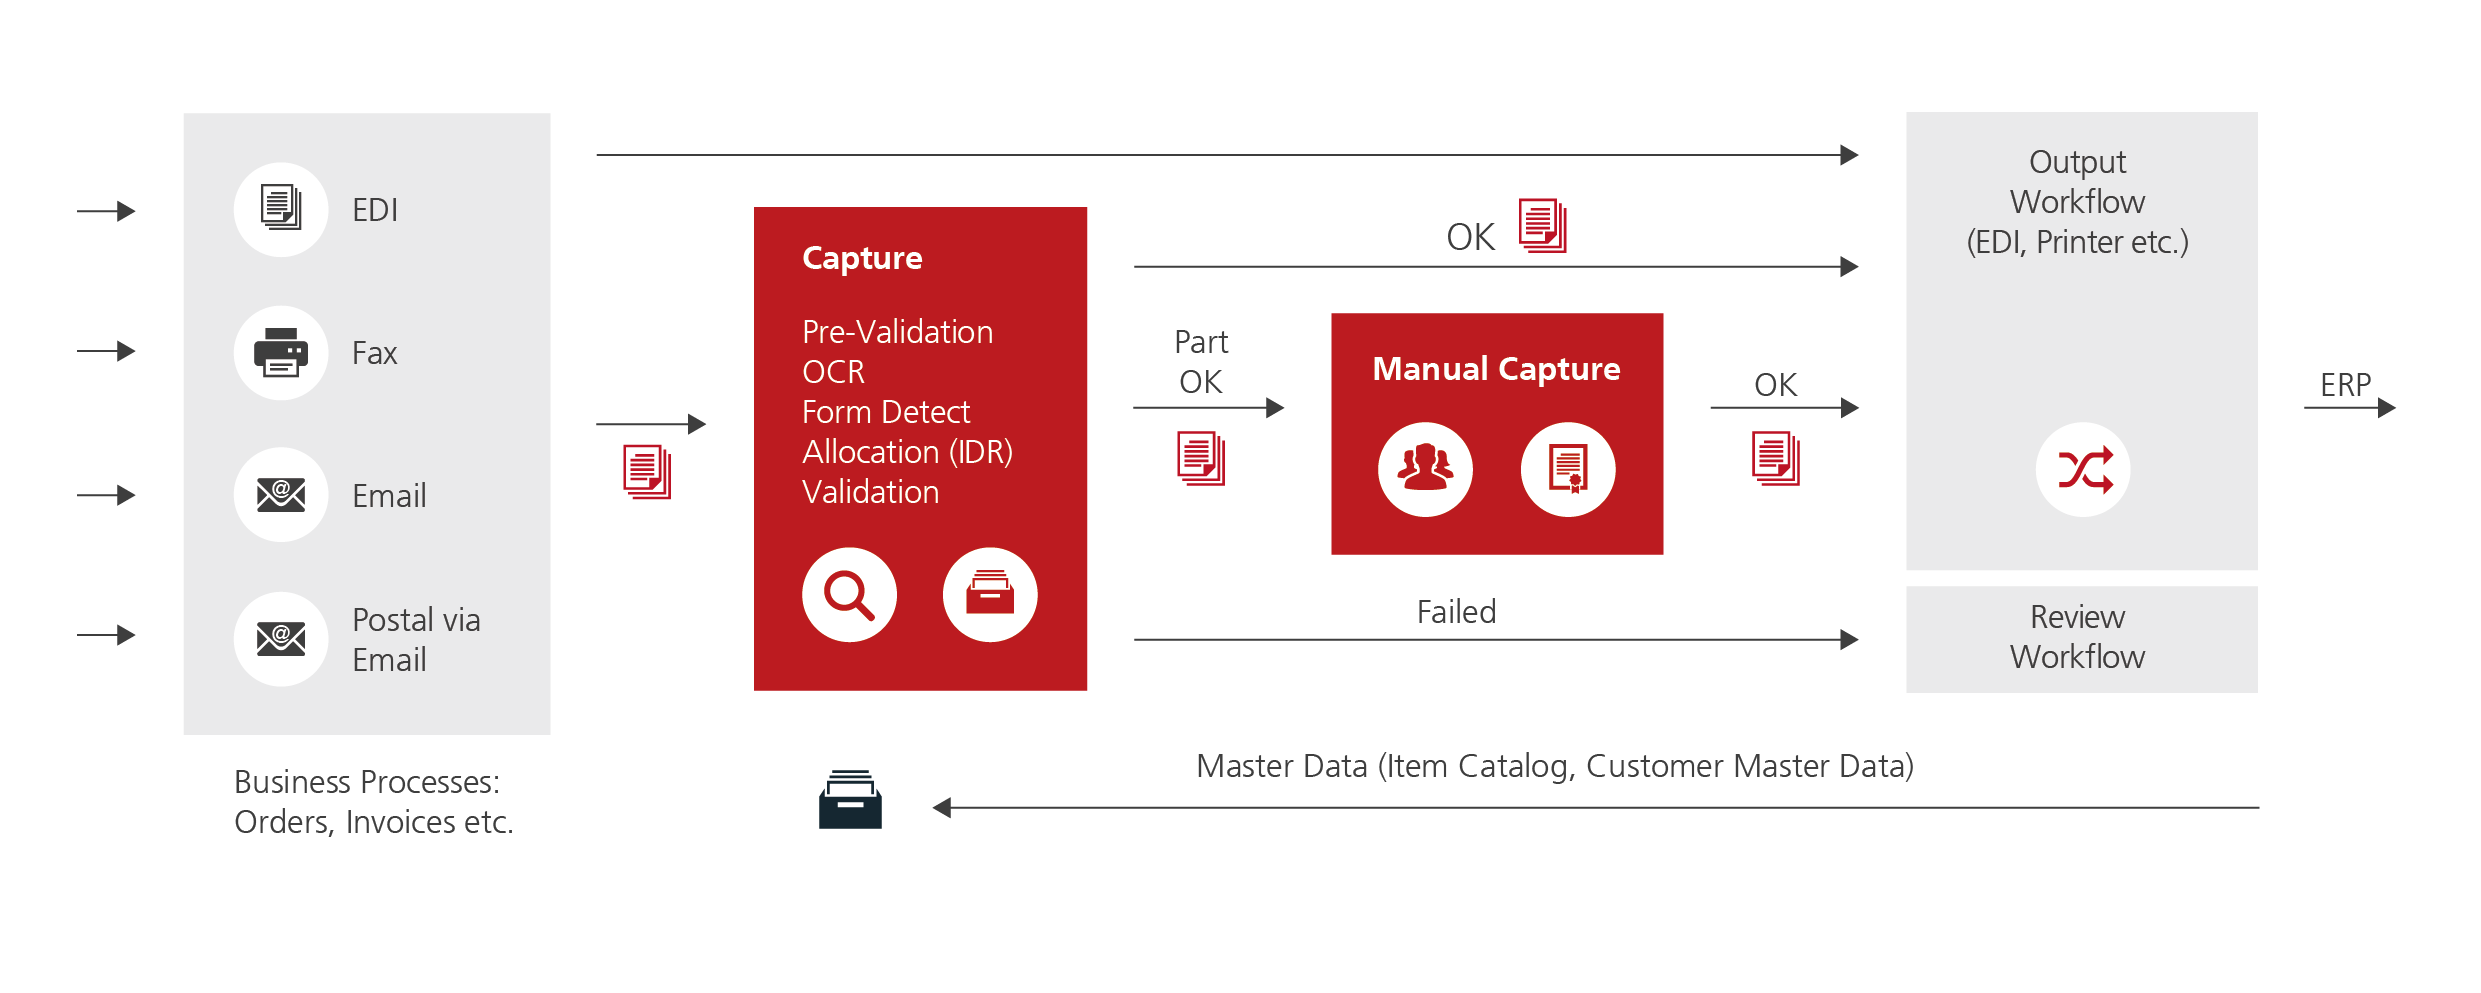 New Retarus 'Managed Capture Services' facilitate smooth data interchange and reduced costs and efforts due to 'Intelligent Document Recognition'